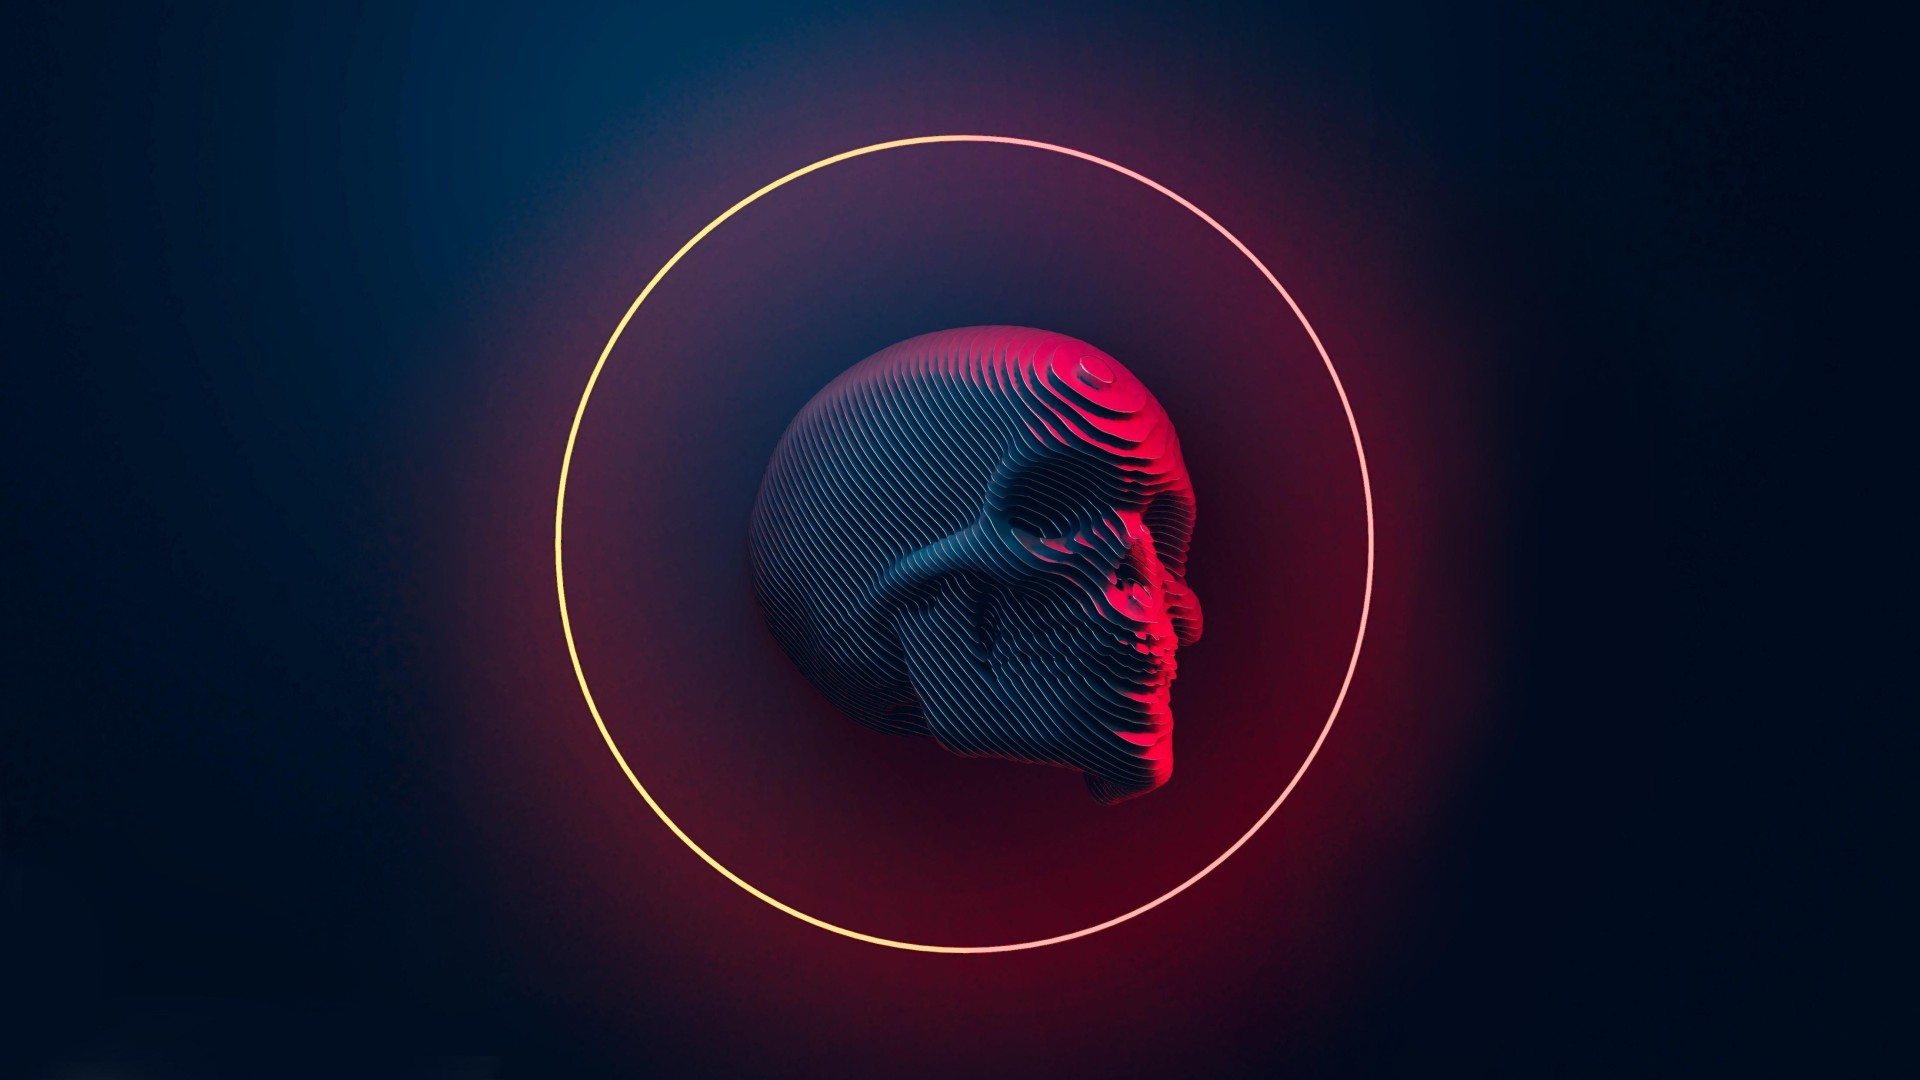 Just Another Skull 4k Wallpaper 1920x1080 1080p Wallpaper The Hot Desktop Wallpapers And Backgrounds For Your Pc And Mobile